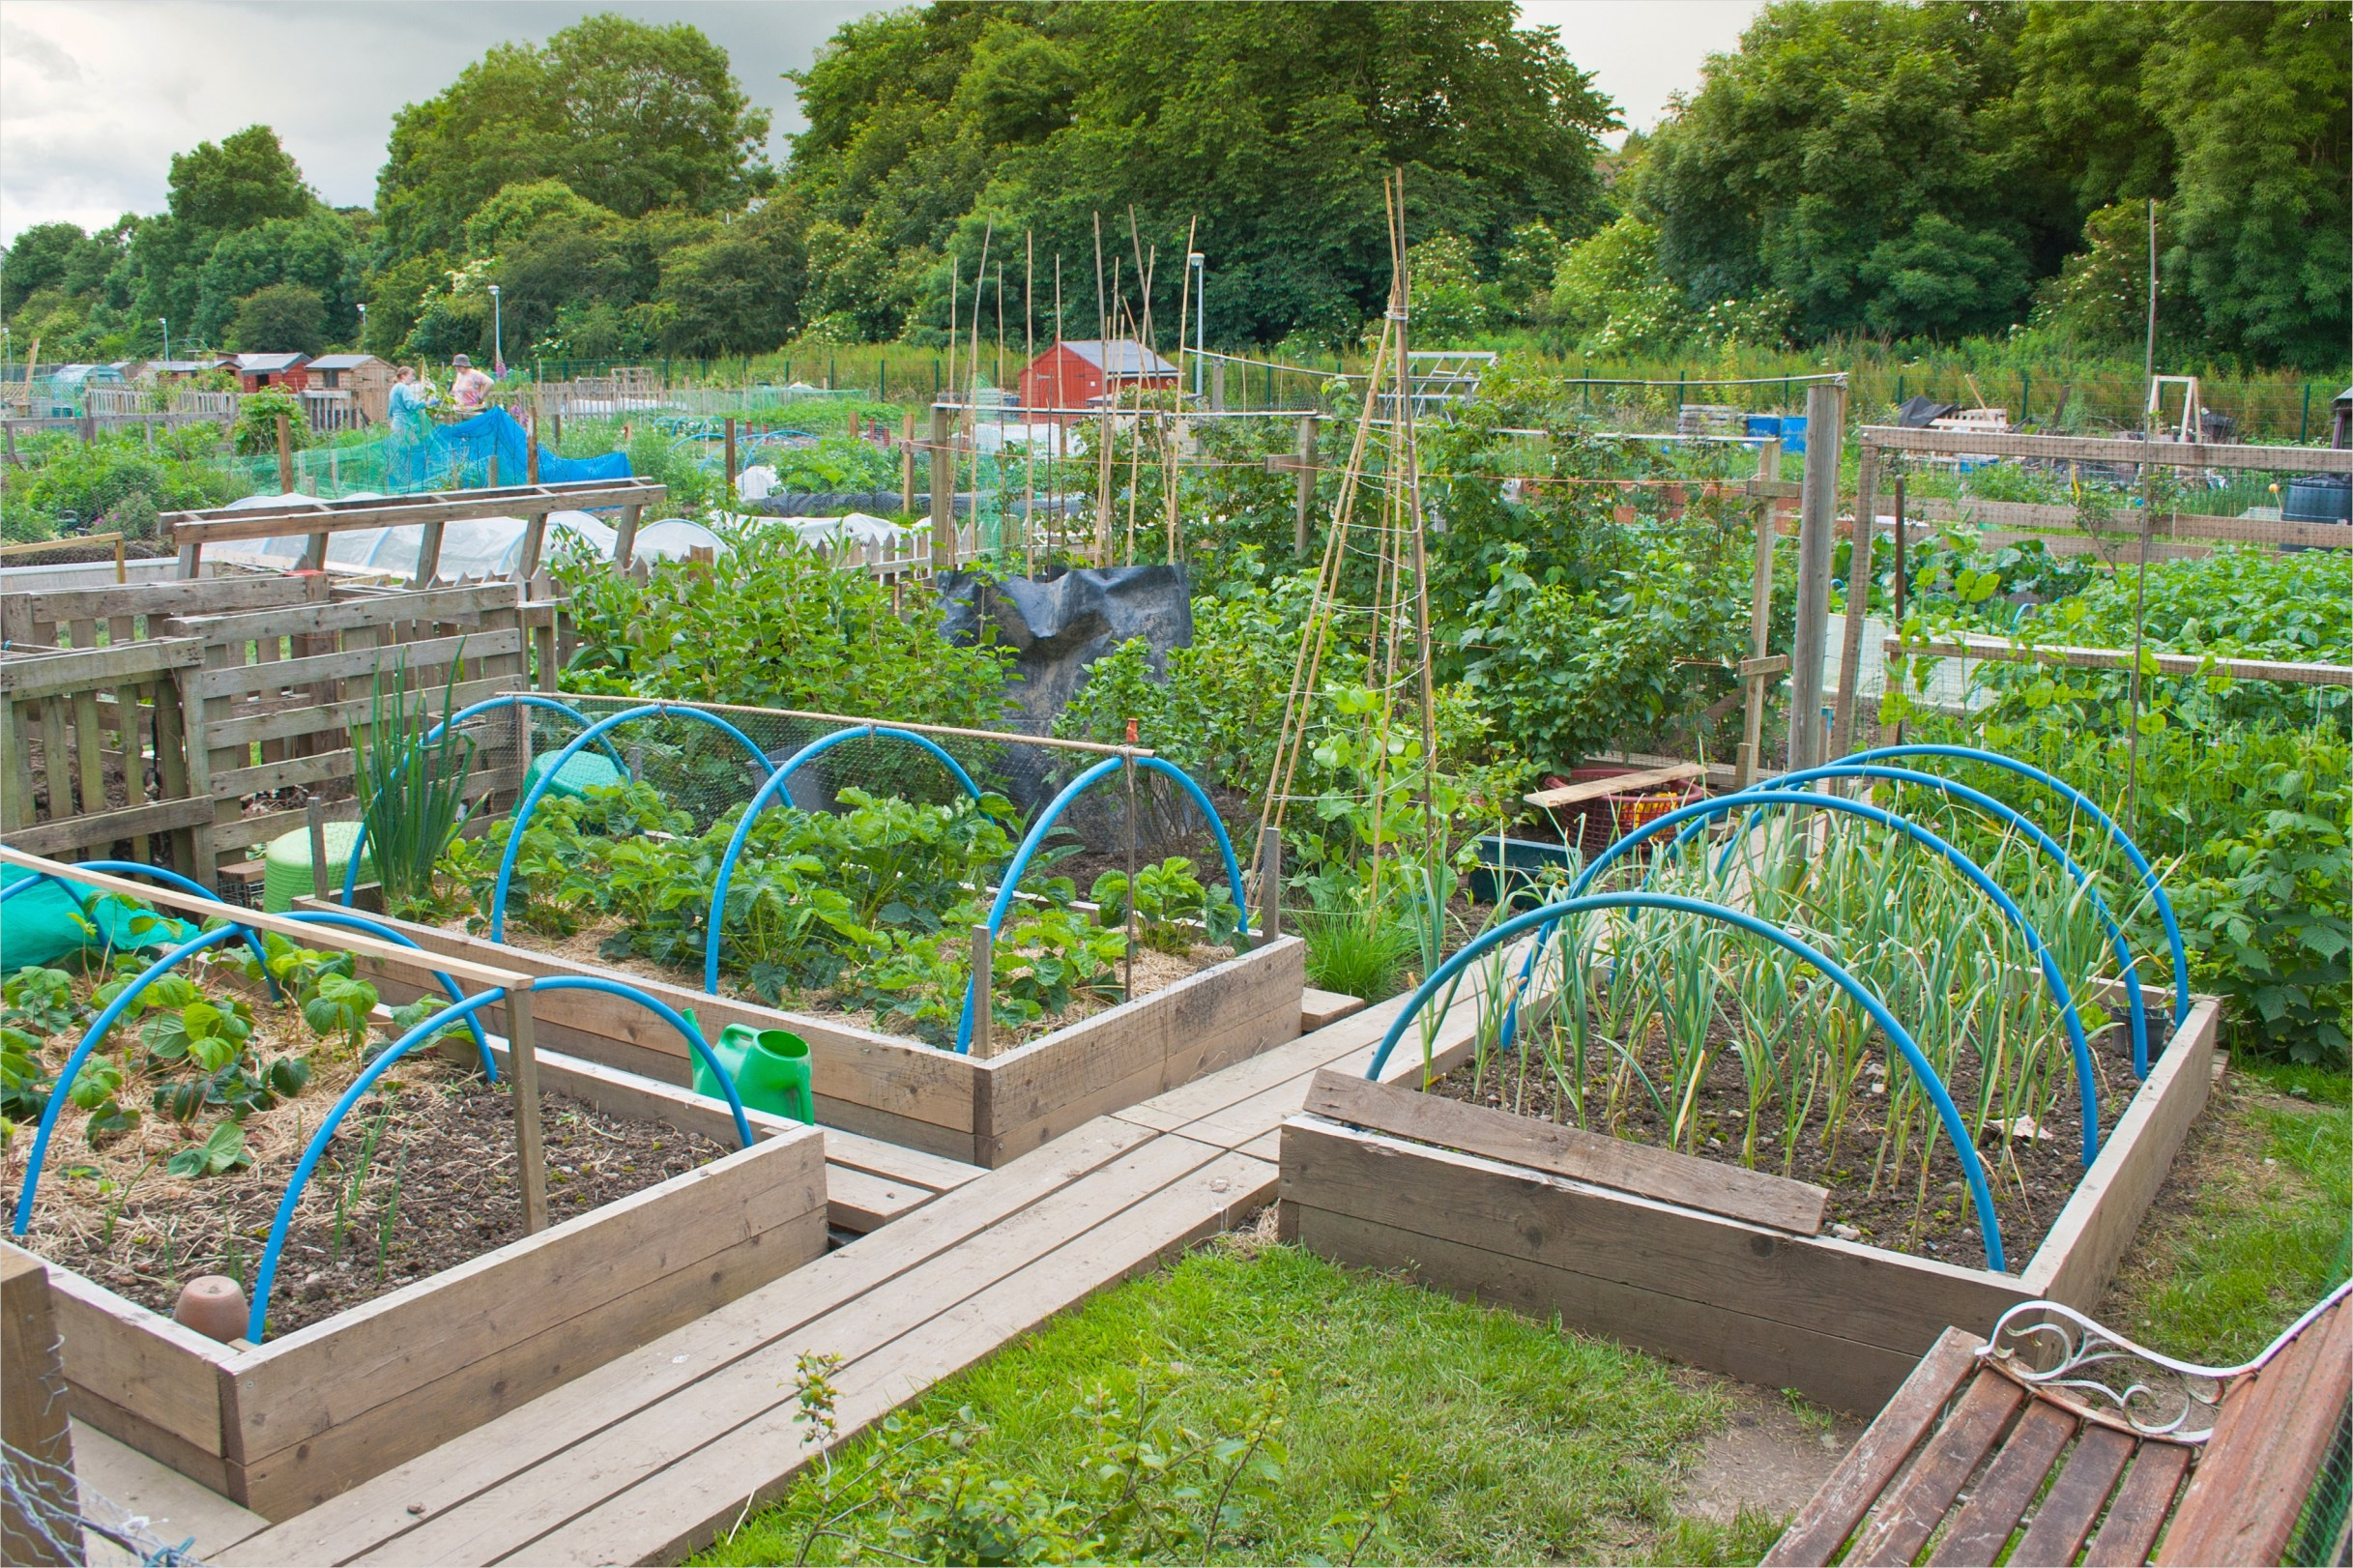 Vegetable Garden Designs 25 Backyard Ve Able Garden Home Design with Diy Wood Raised Bed and Fence Ideas 3